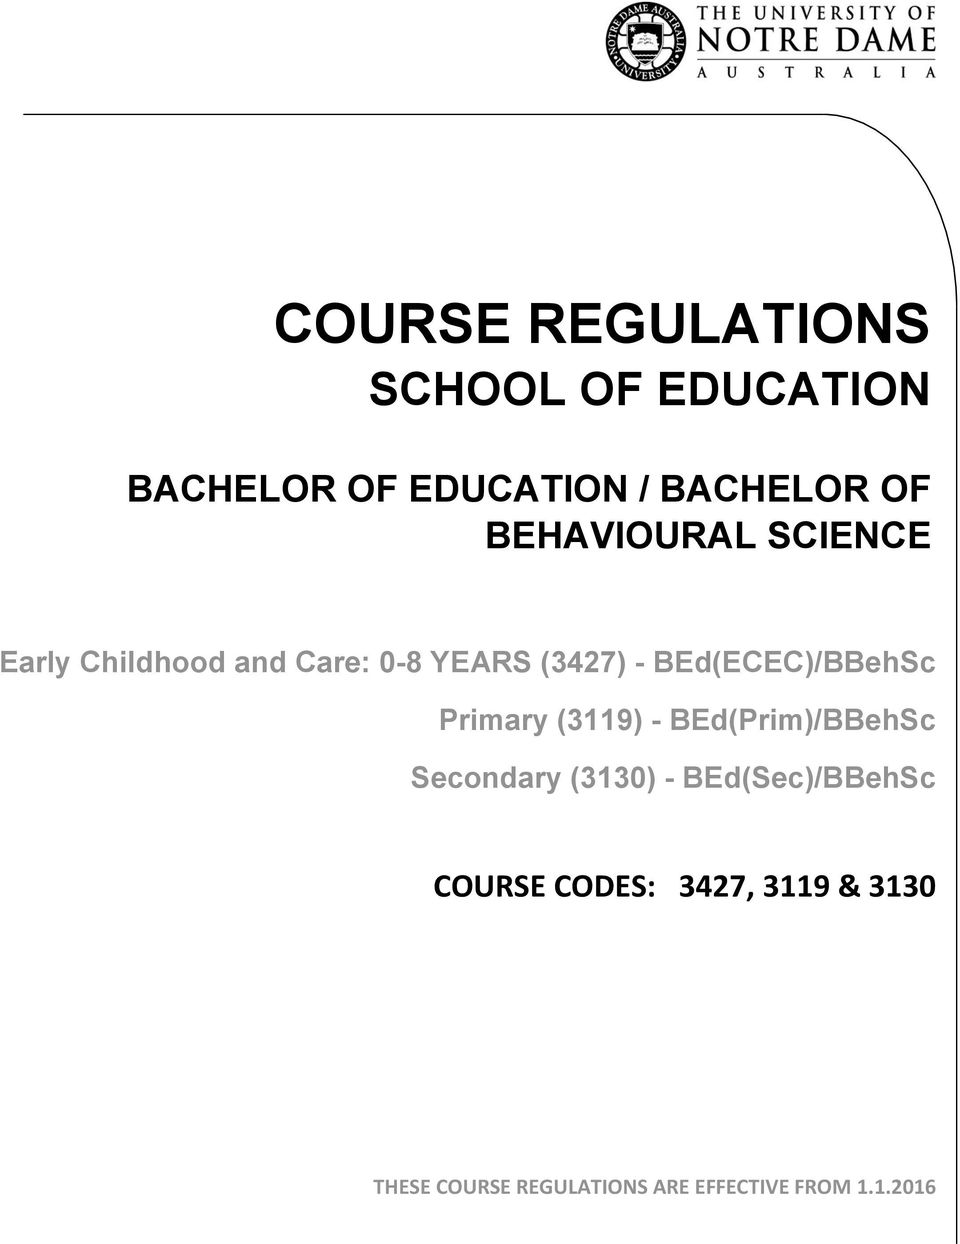 BEd(ECEC)/BBehSc Primary (3119) - BEd(Prim)/BBehSc Secondary (3130) -